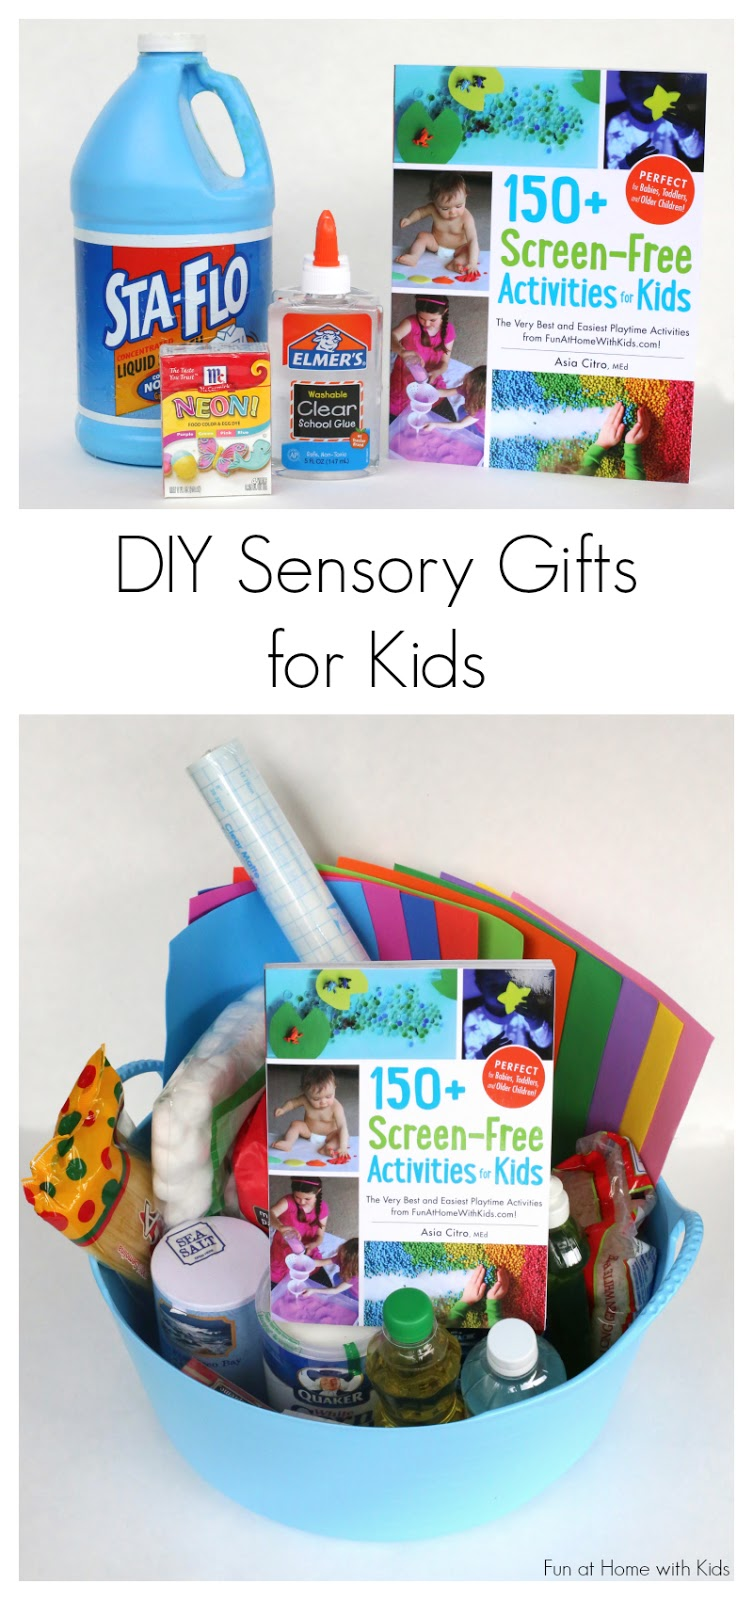 DIY Sensory Kits: Creative Gifts for Kids